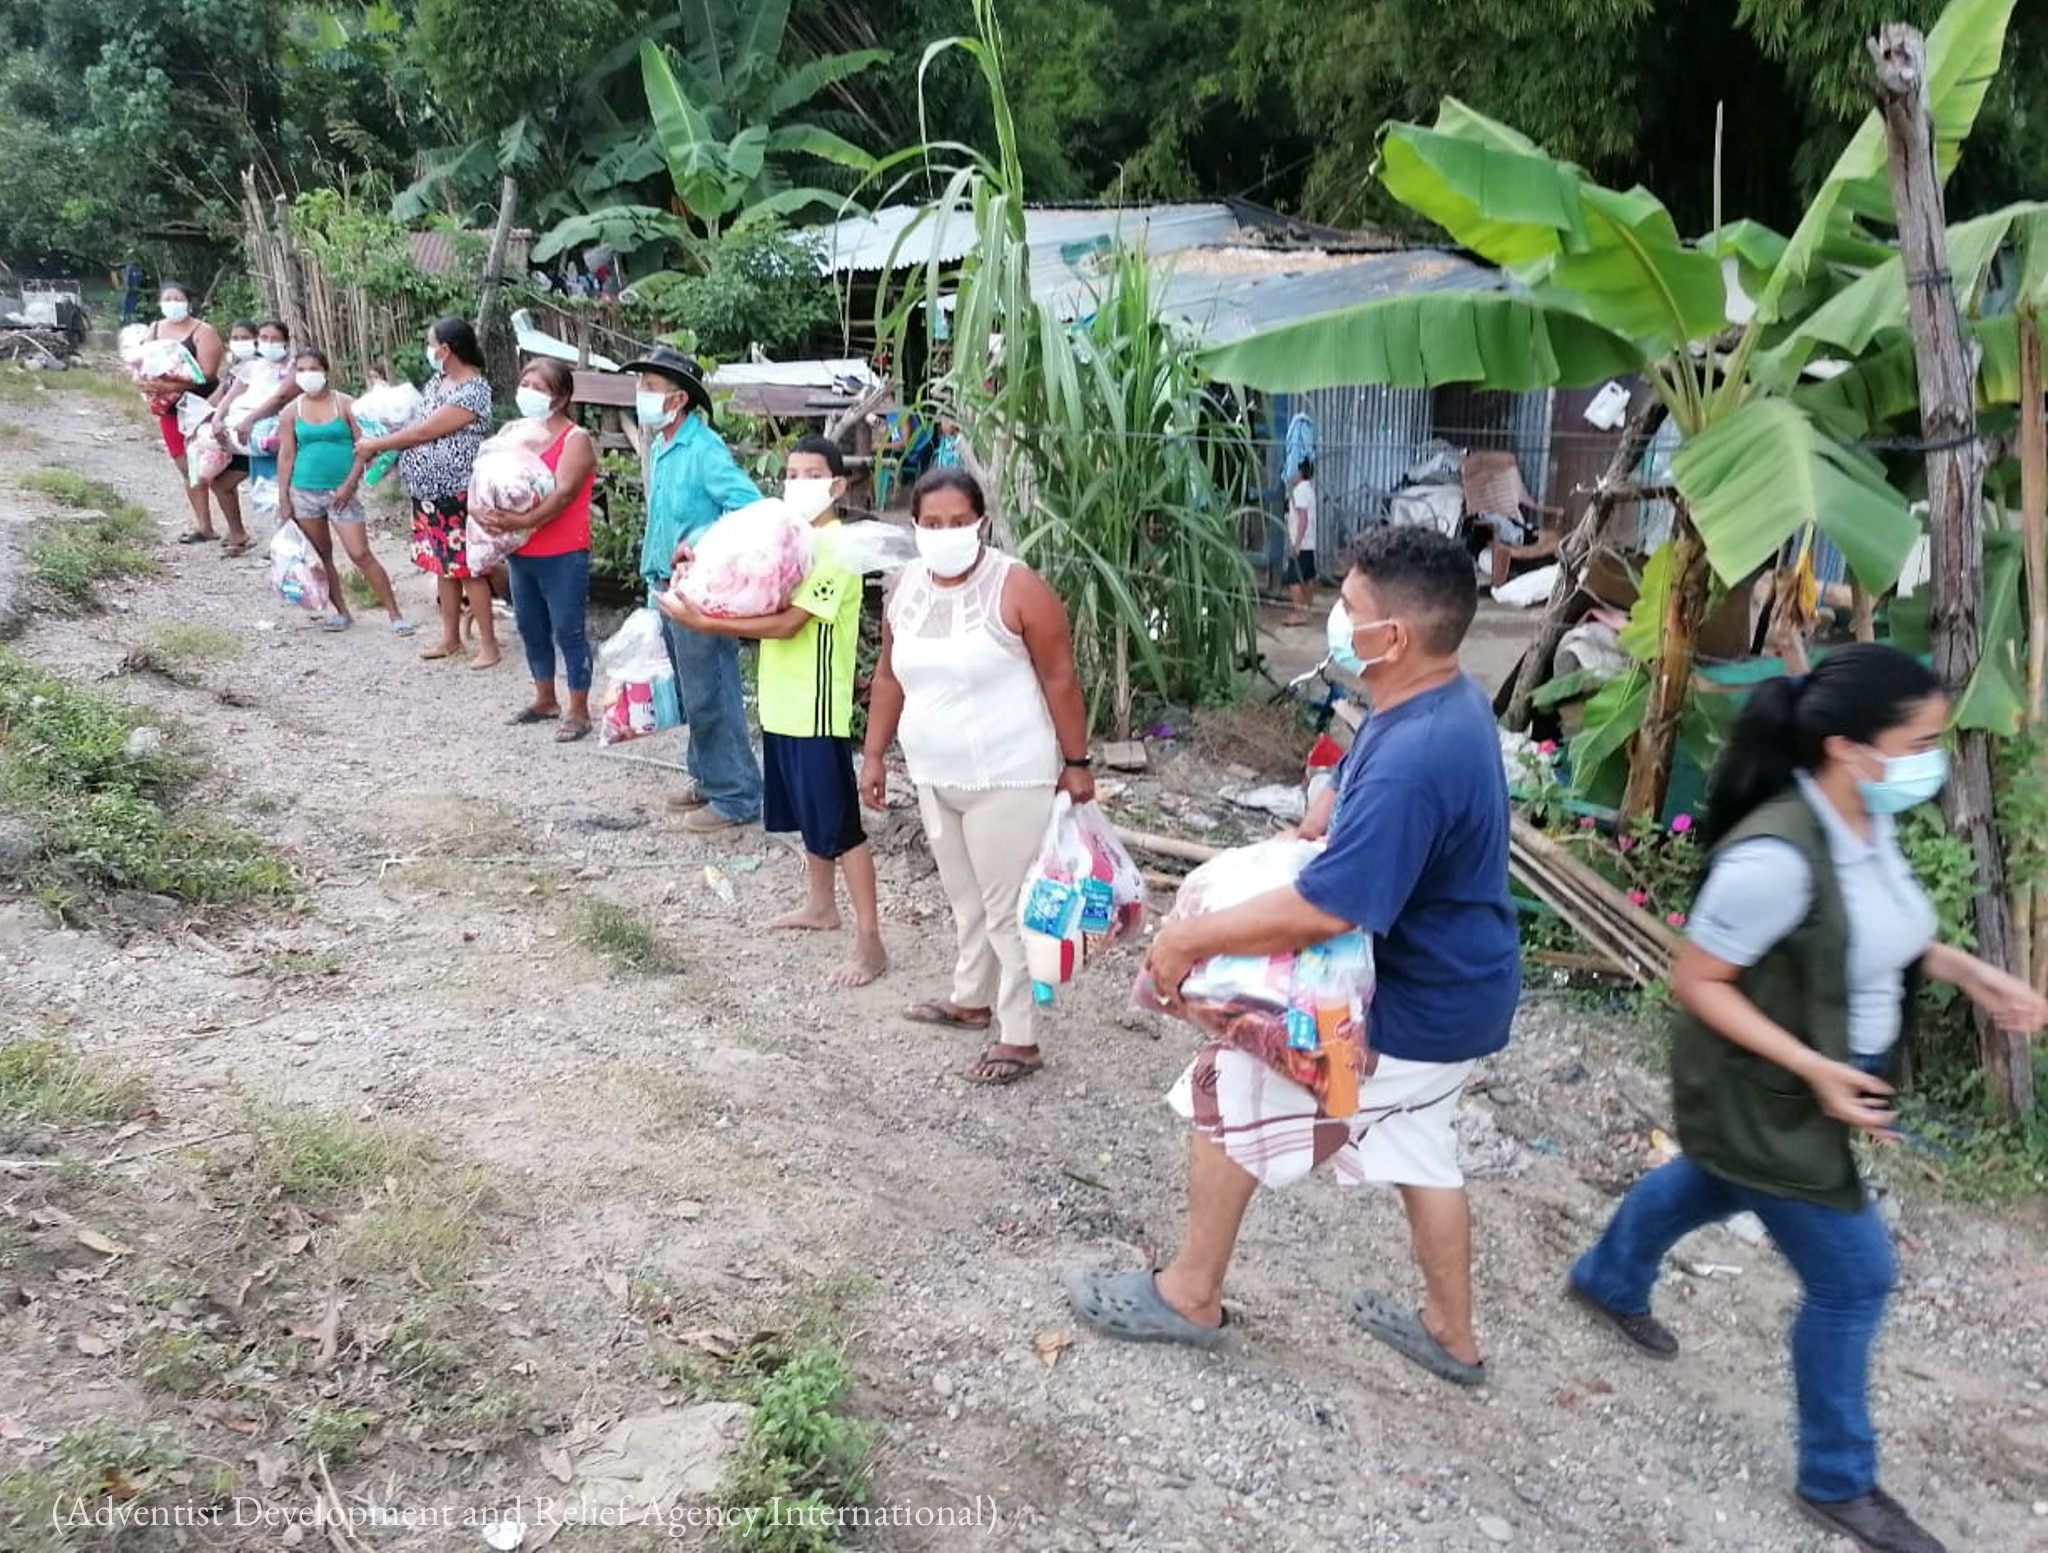 Line of people holding plastic bags of supplies (Adventist Development and Relief Agency International)